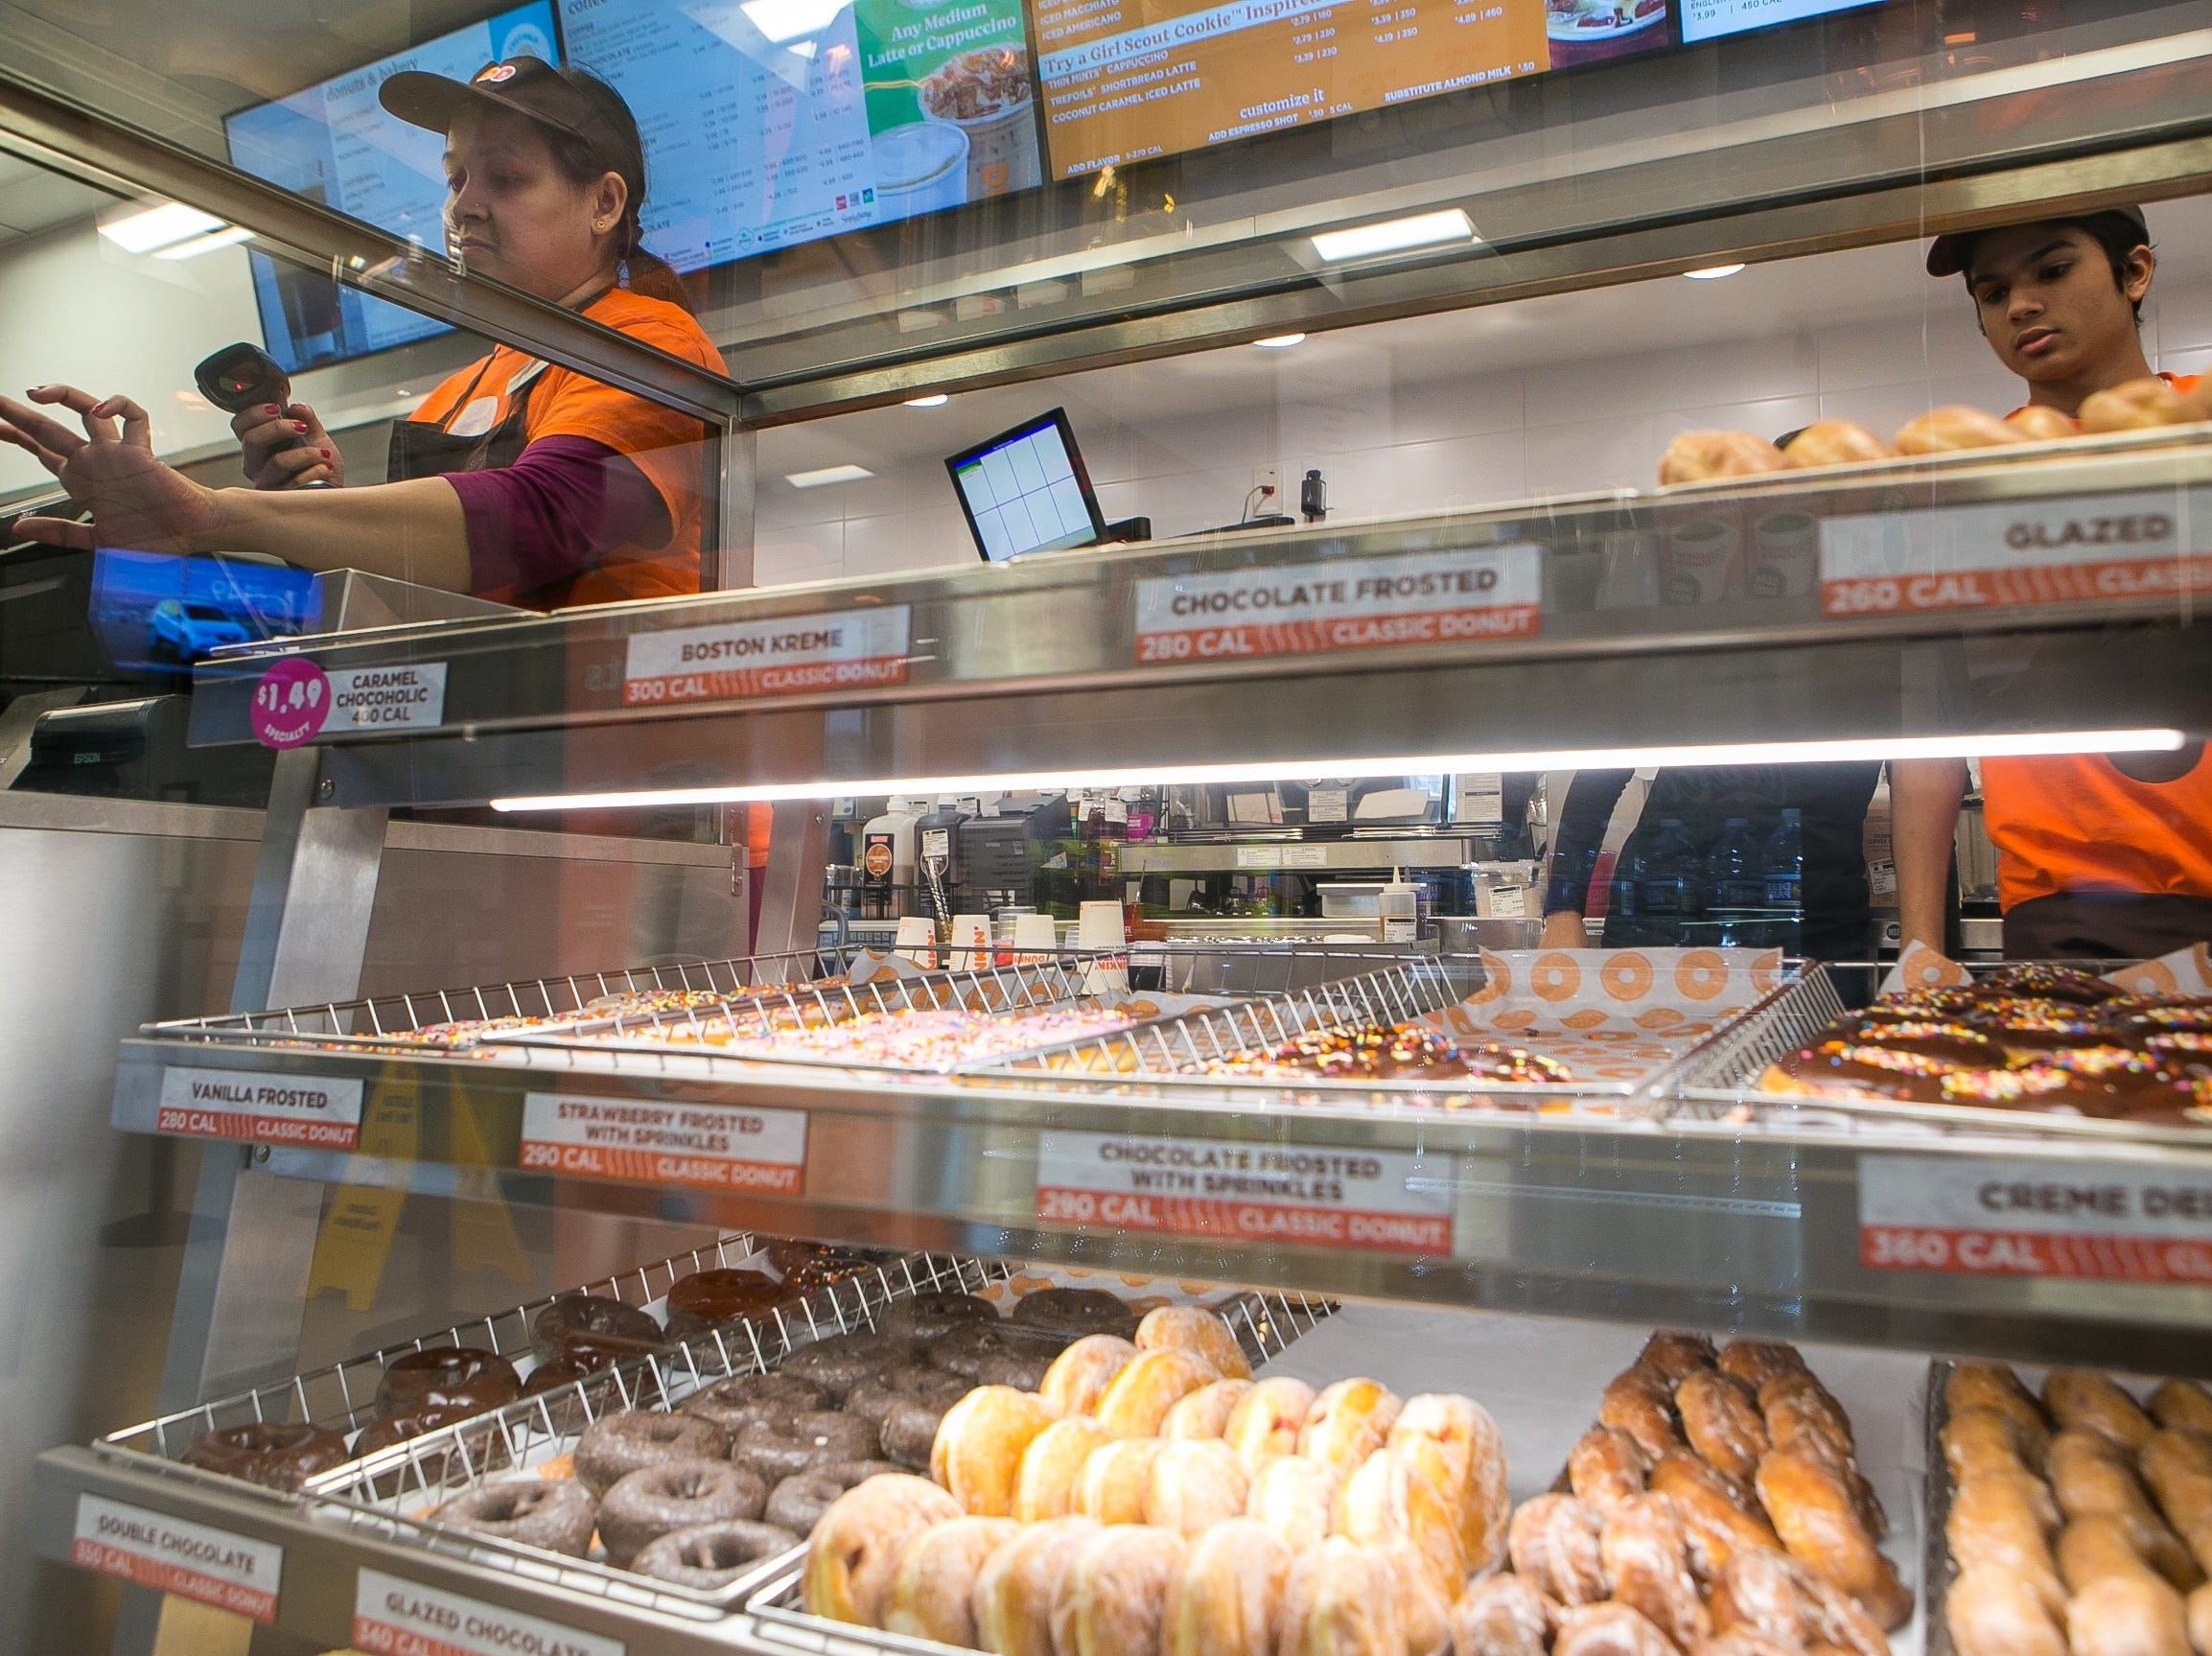 The Dunkin' chain, formerly known as Dunkin' Donuts, has opened one of its first new 'concept' stores today in north Wilmington. The 1,800-square-foot store at 3446 Naamans Road features a more modern atmosphere and innovative technologies. The Delaware store is one of about 60 new and remodeled Dunkin' restaurants with new designs and the new Dunkin' brand name.